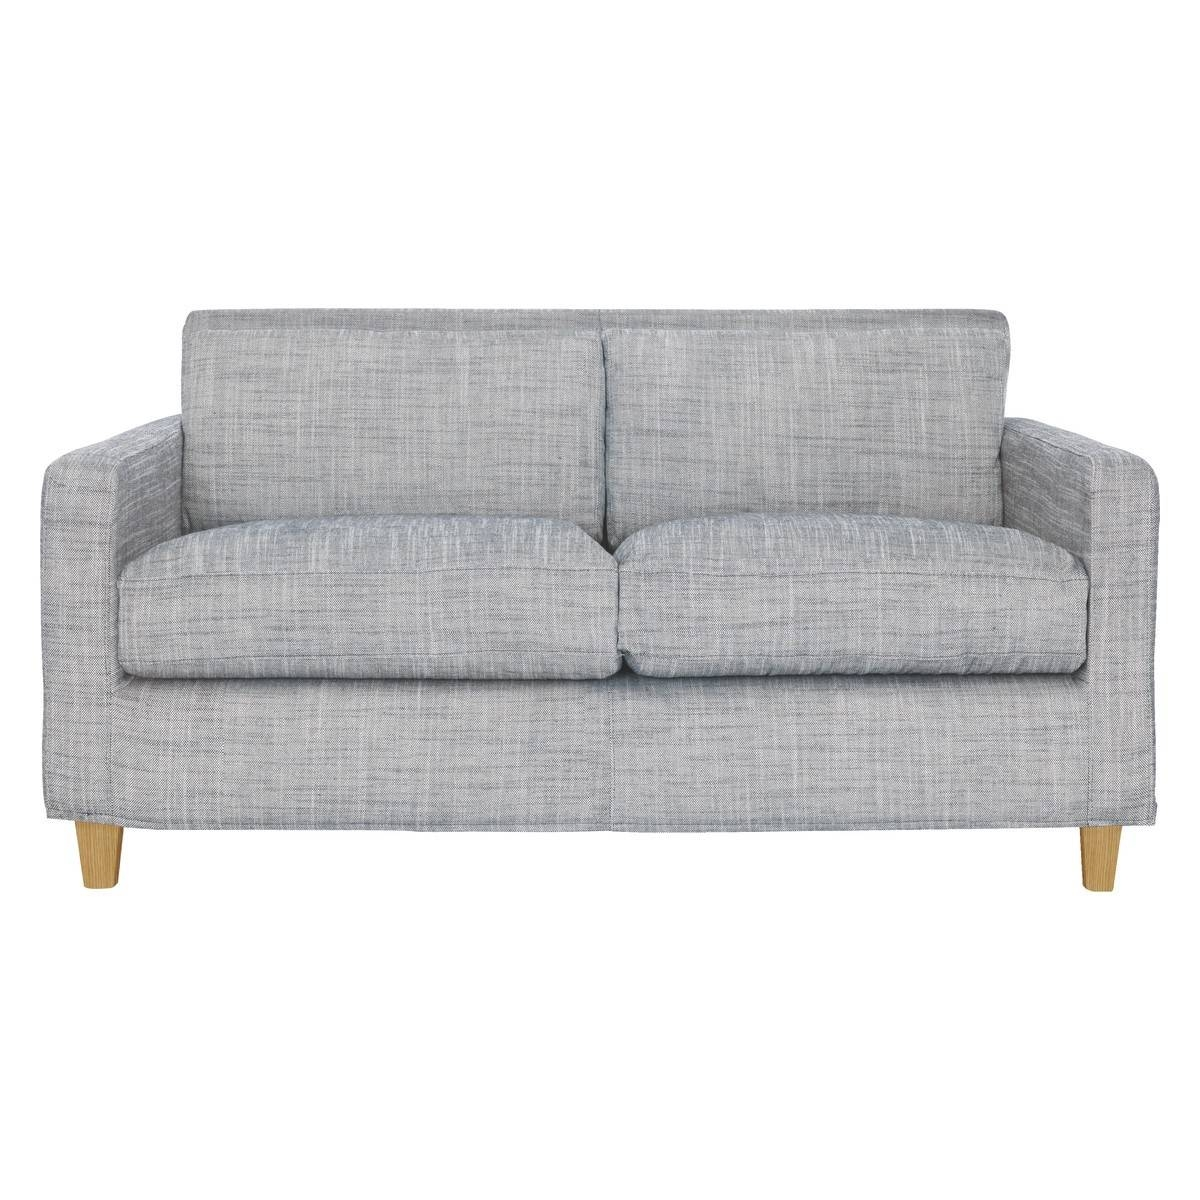 Chester Black & White Italian Woven Fabric 2 Seater Sofa, Oak within 2 Seater Sofas (Image 9 of 30)